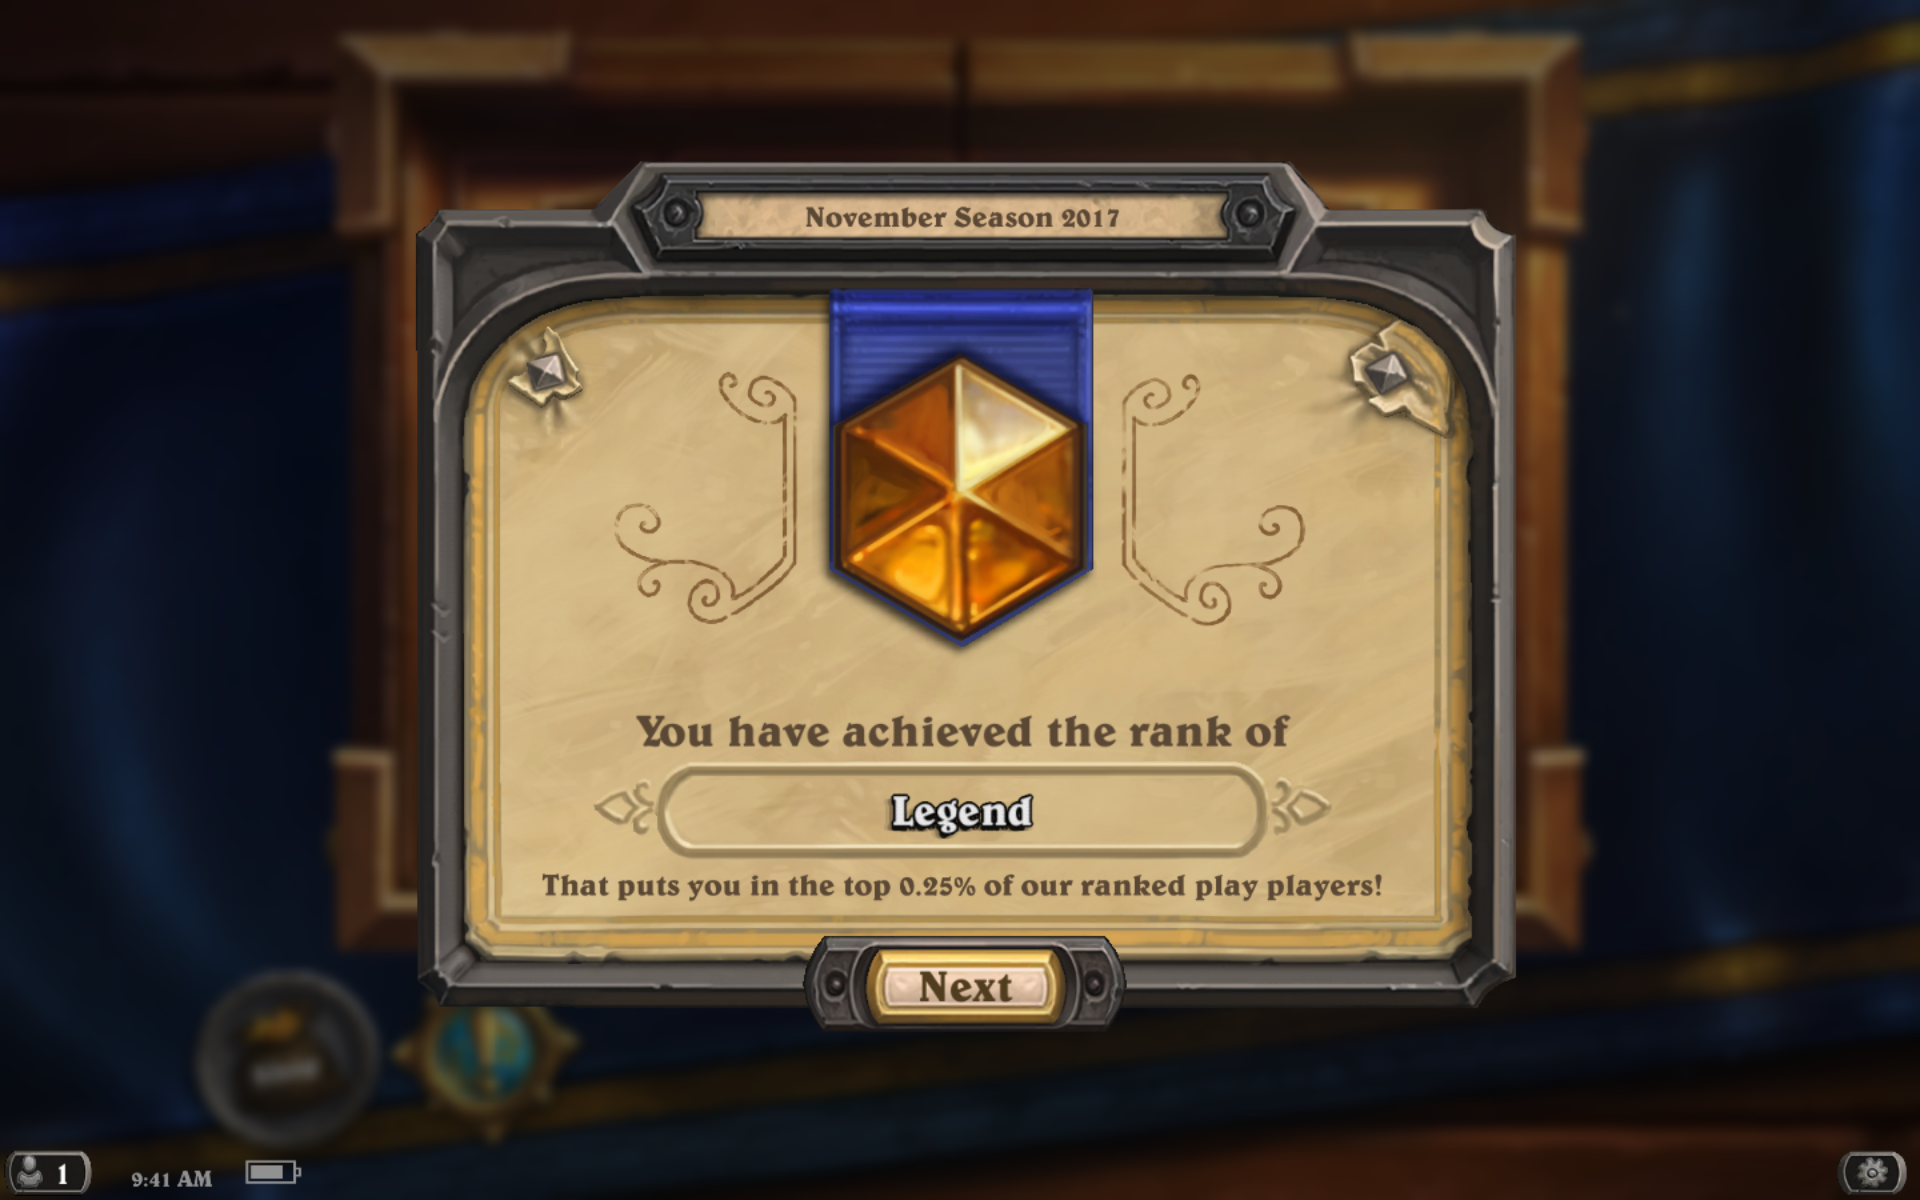 Hearthstone players are ranked every season (month). What it must feel like to be ranked in the top 0.25% of players in a season